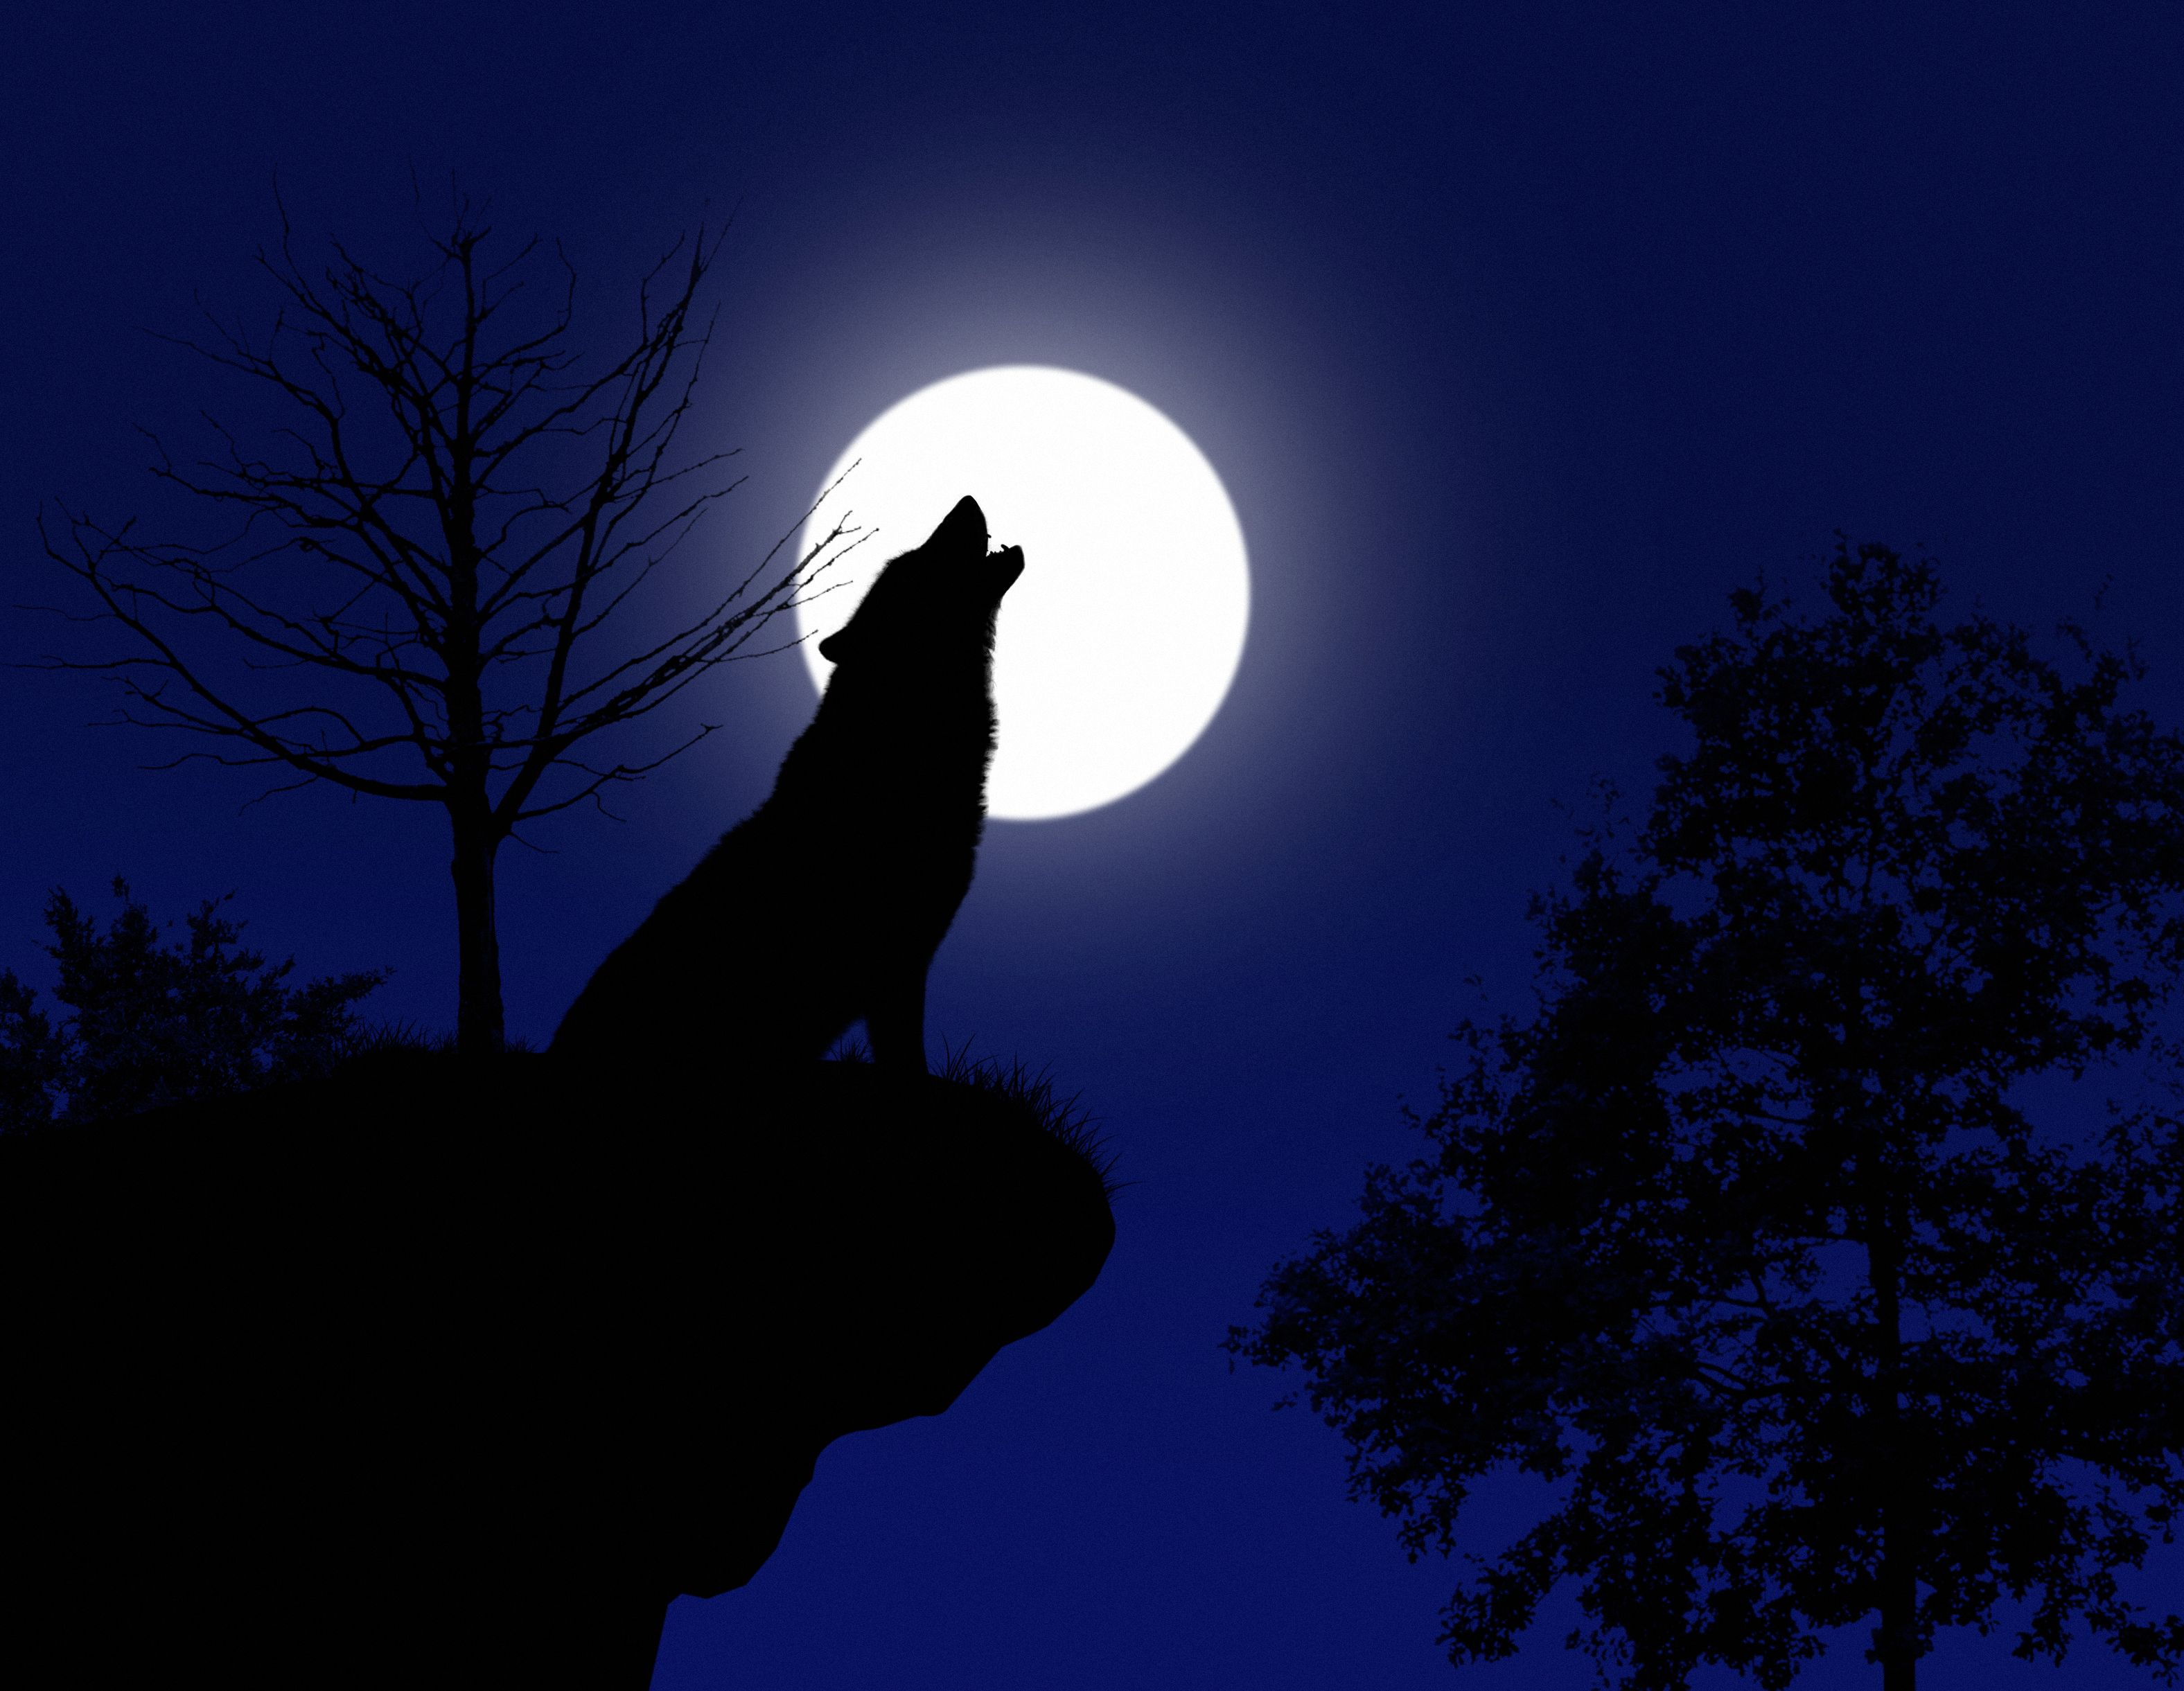 January's Wolf Moon, the First Full Moon of the Year, Will Reach Its Peak This Week